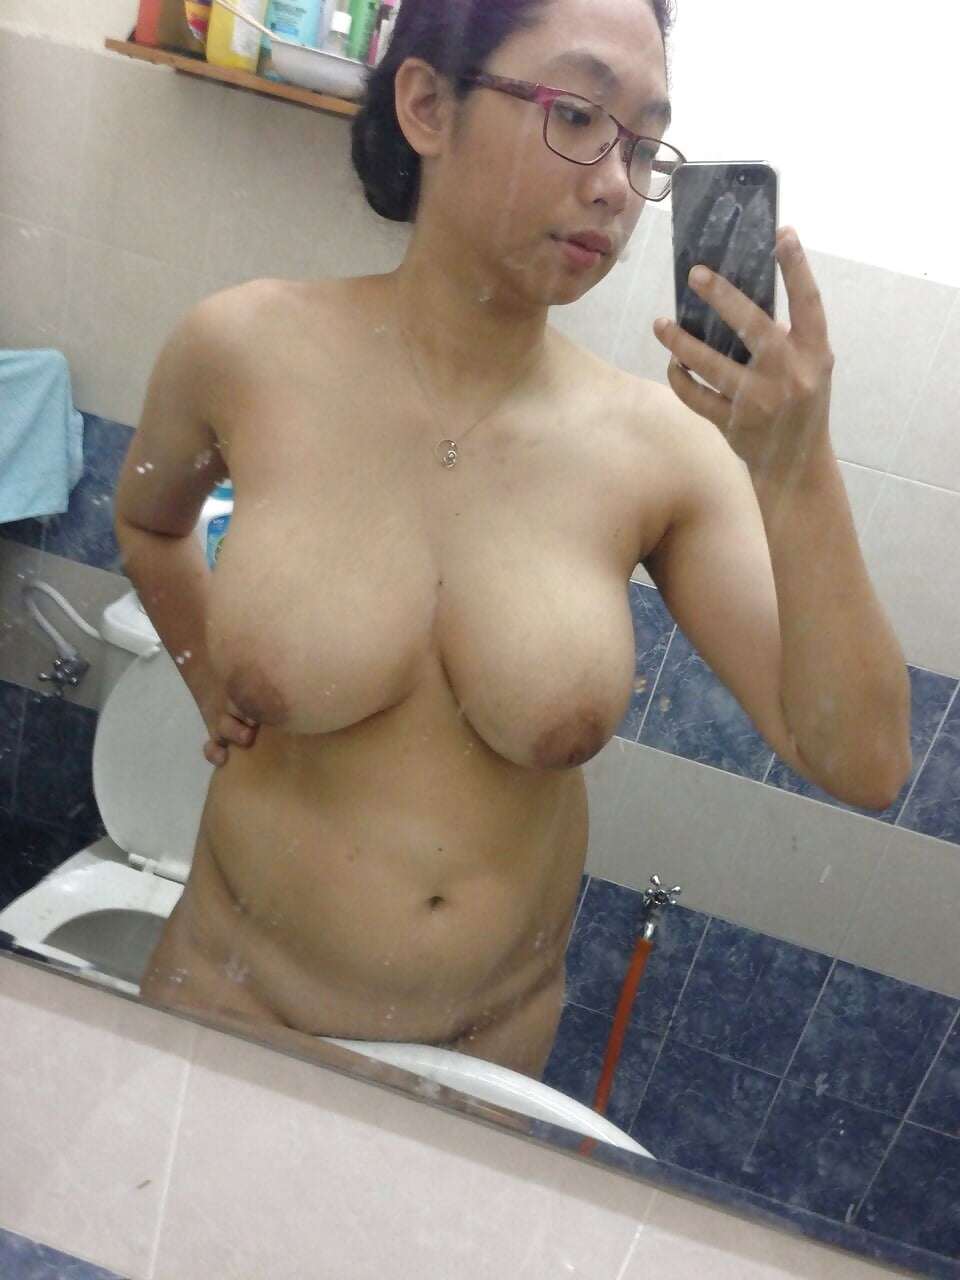 nude-mom-singapore-images-wet-panty-nude